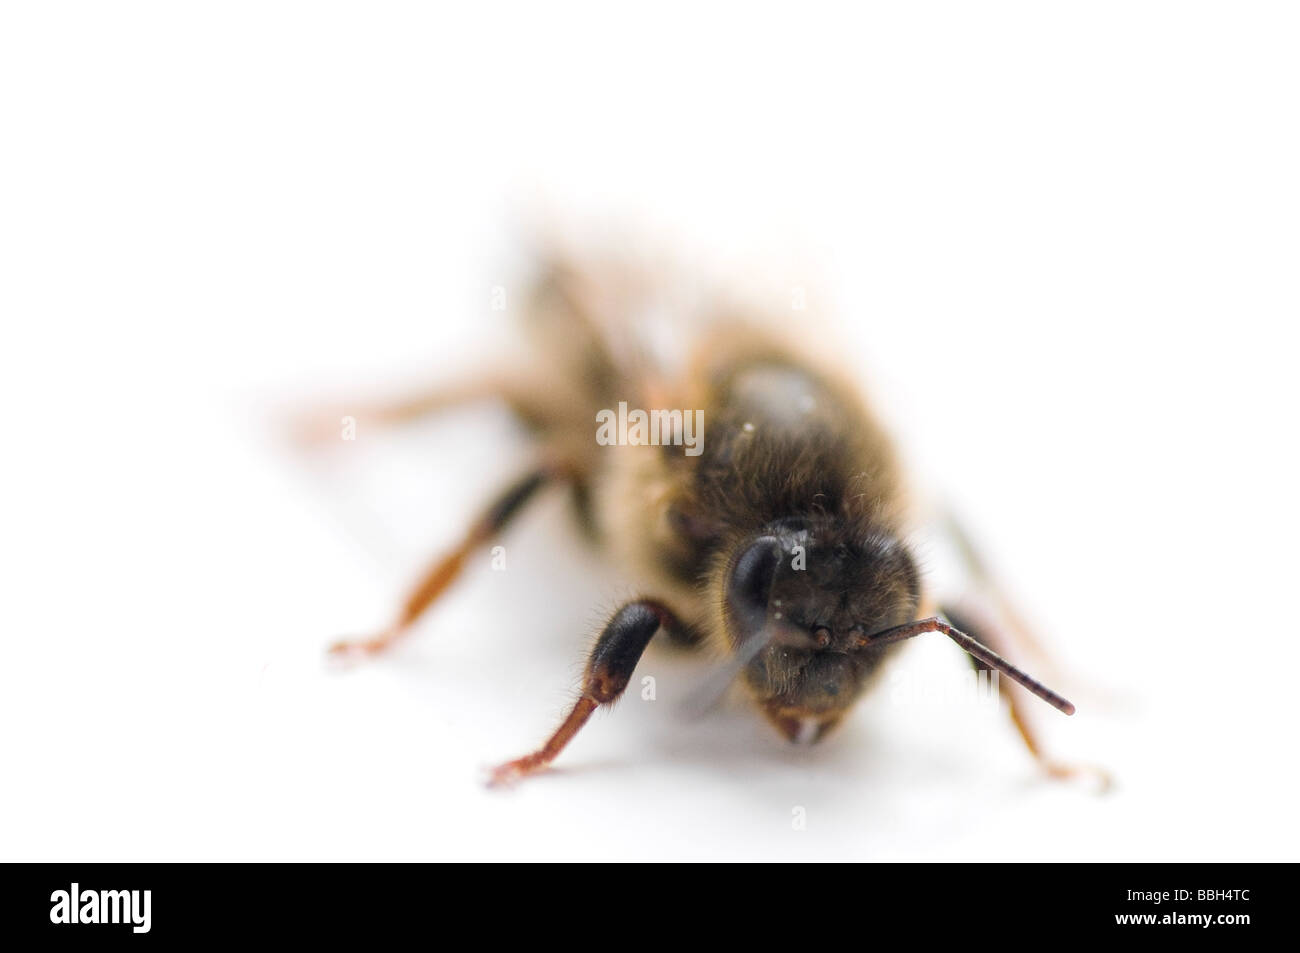 Newly emerged virgin queen honey bee - Stock Image